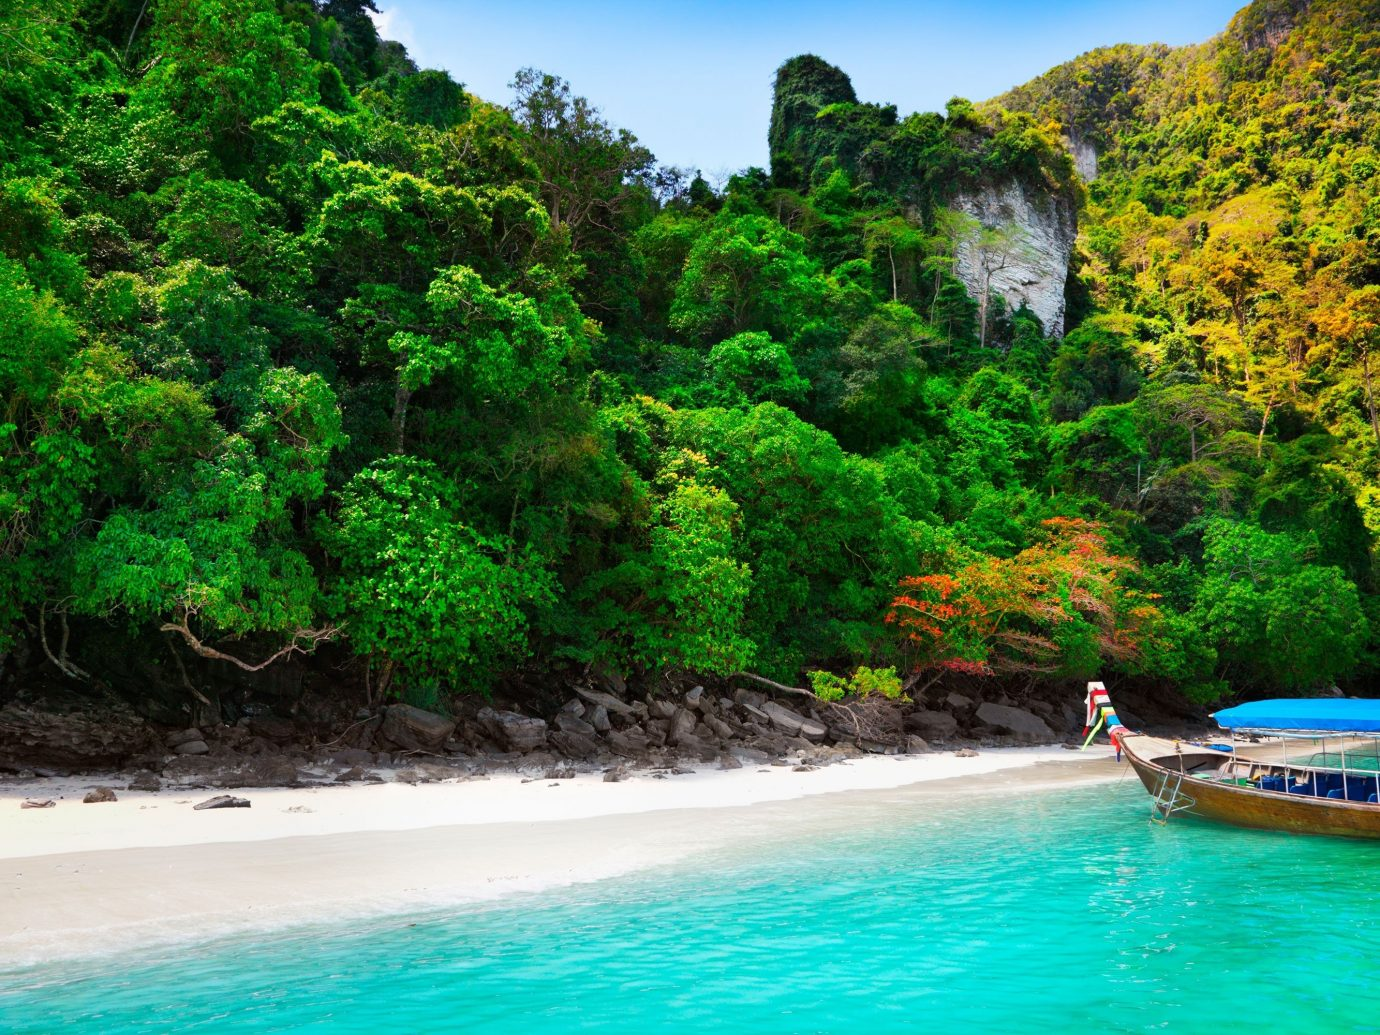 Trip Ideas tree water outdoor landform Pool geographical feature body of water River vacation water sport Sea tropics bay Jungle caribbean Lagoon Island rainforest water feature blue reef swimming surrounded